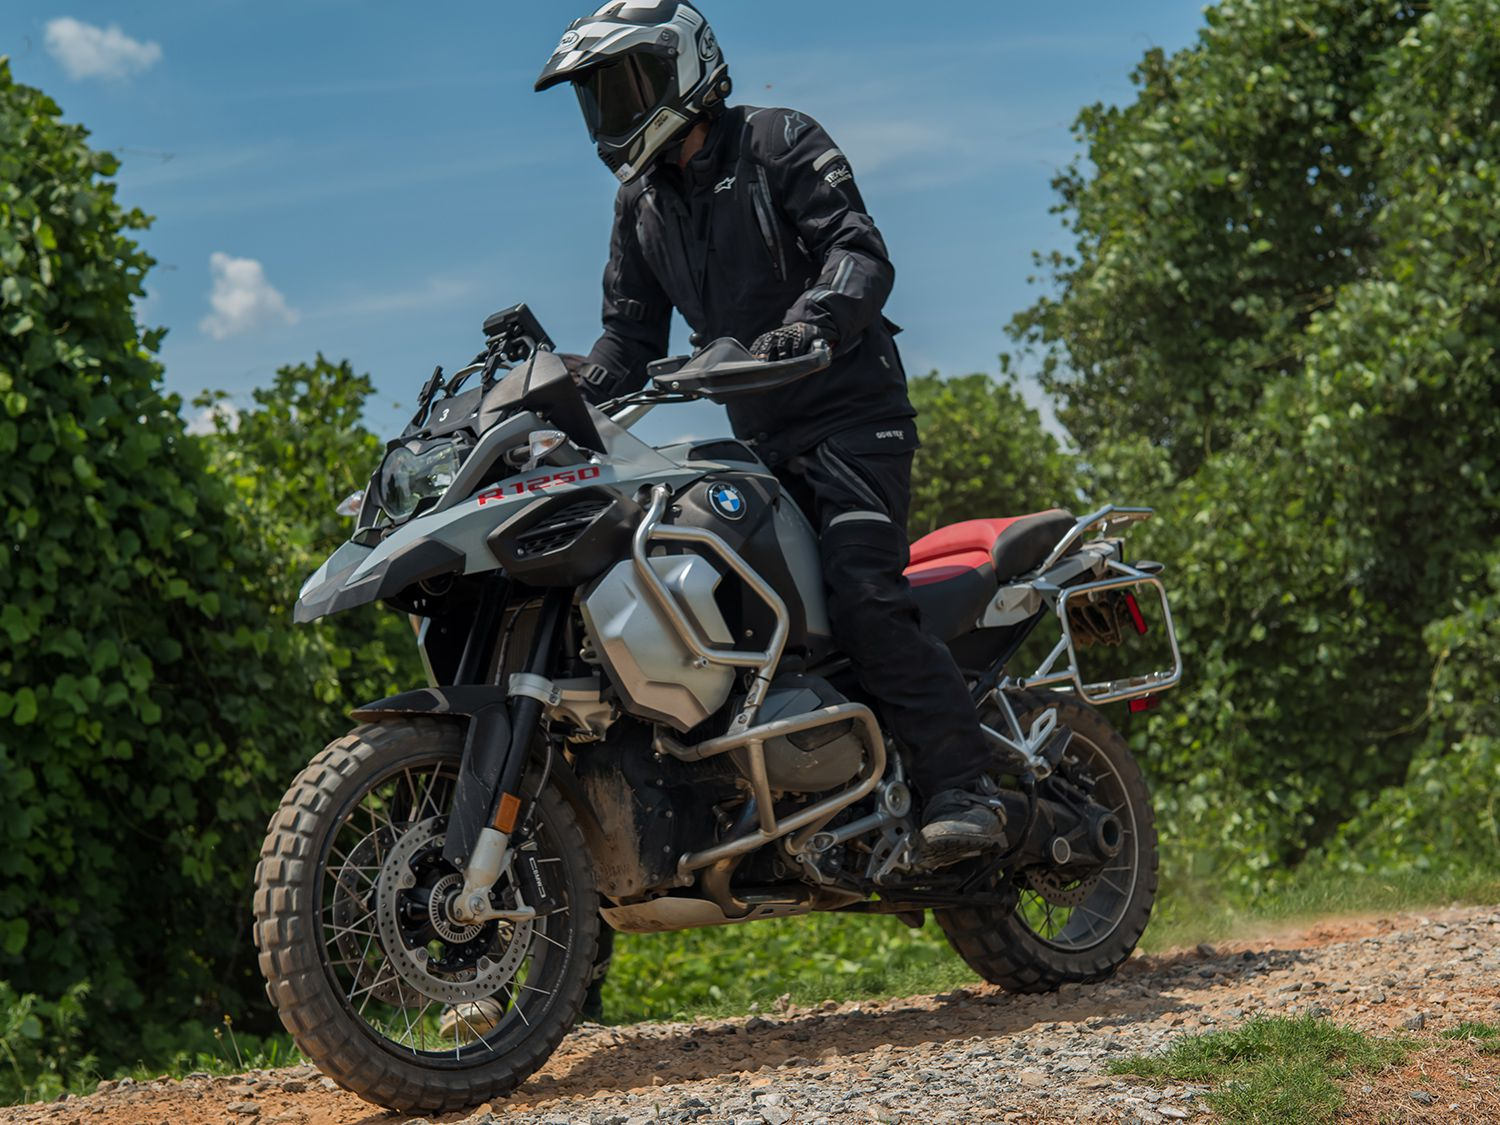 Getting Schooled At BMW's Two-Day Enduro Faculty